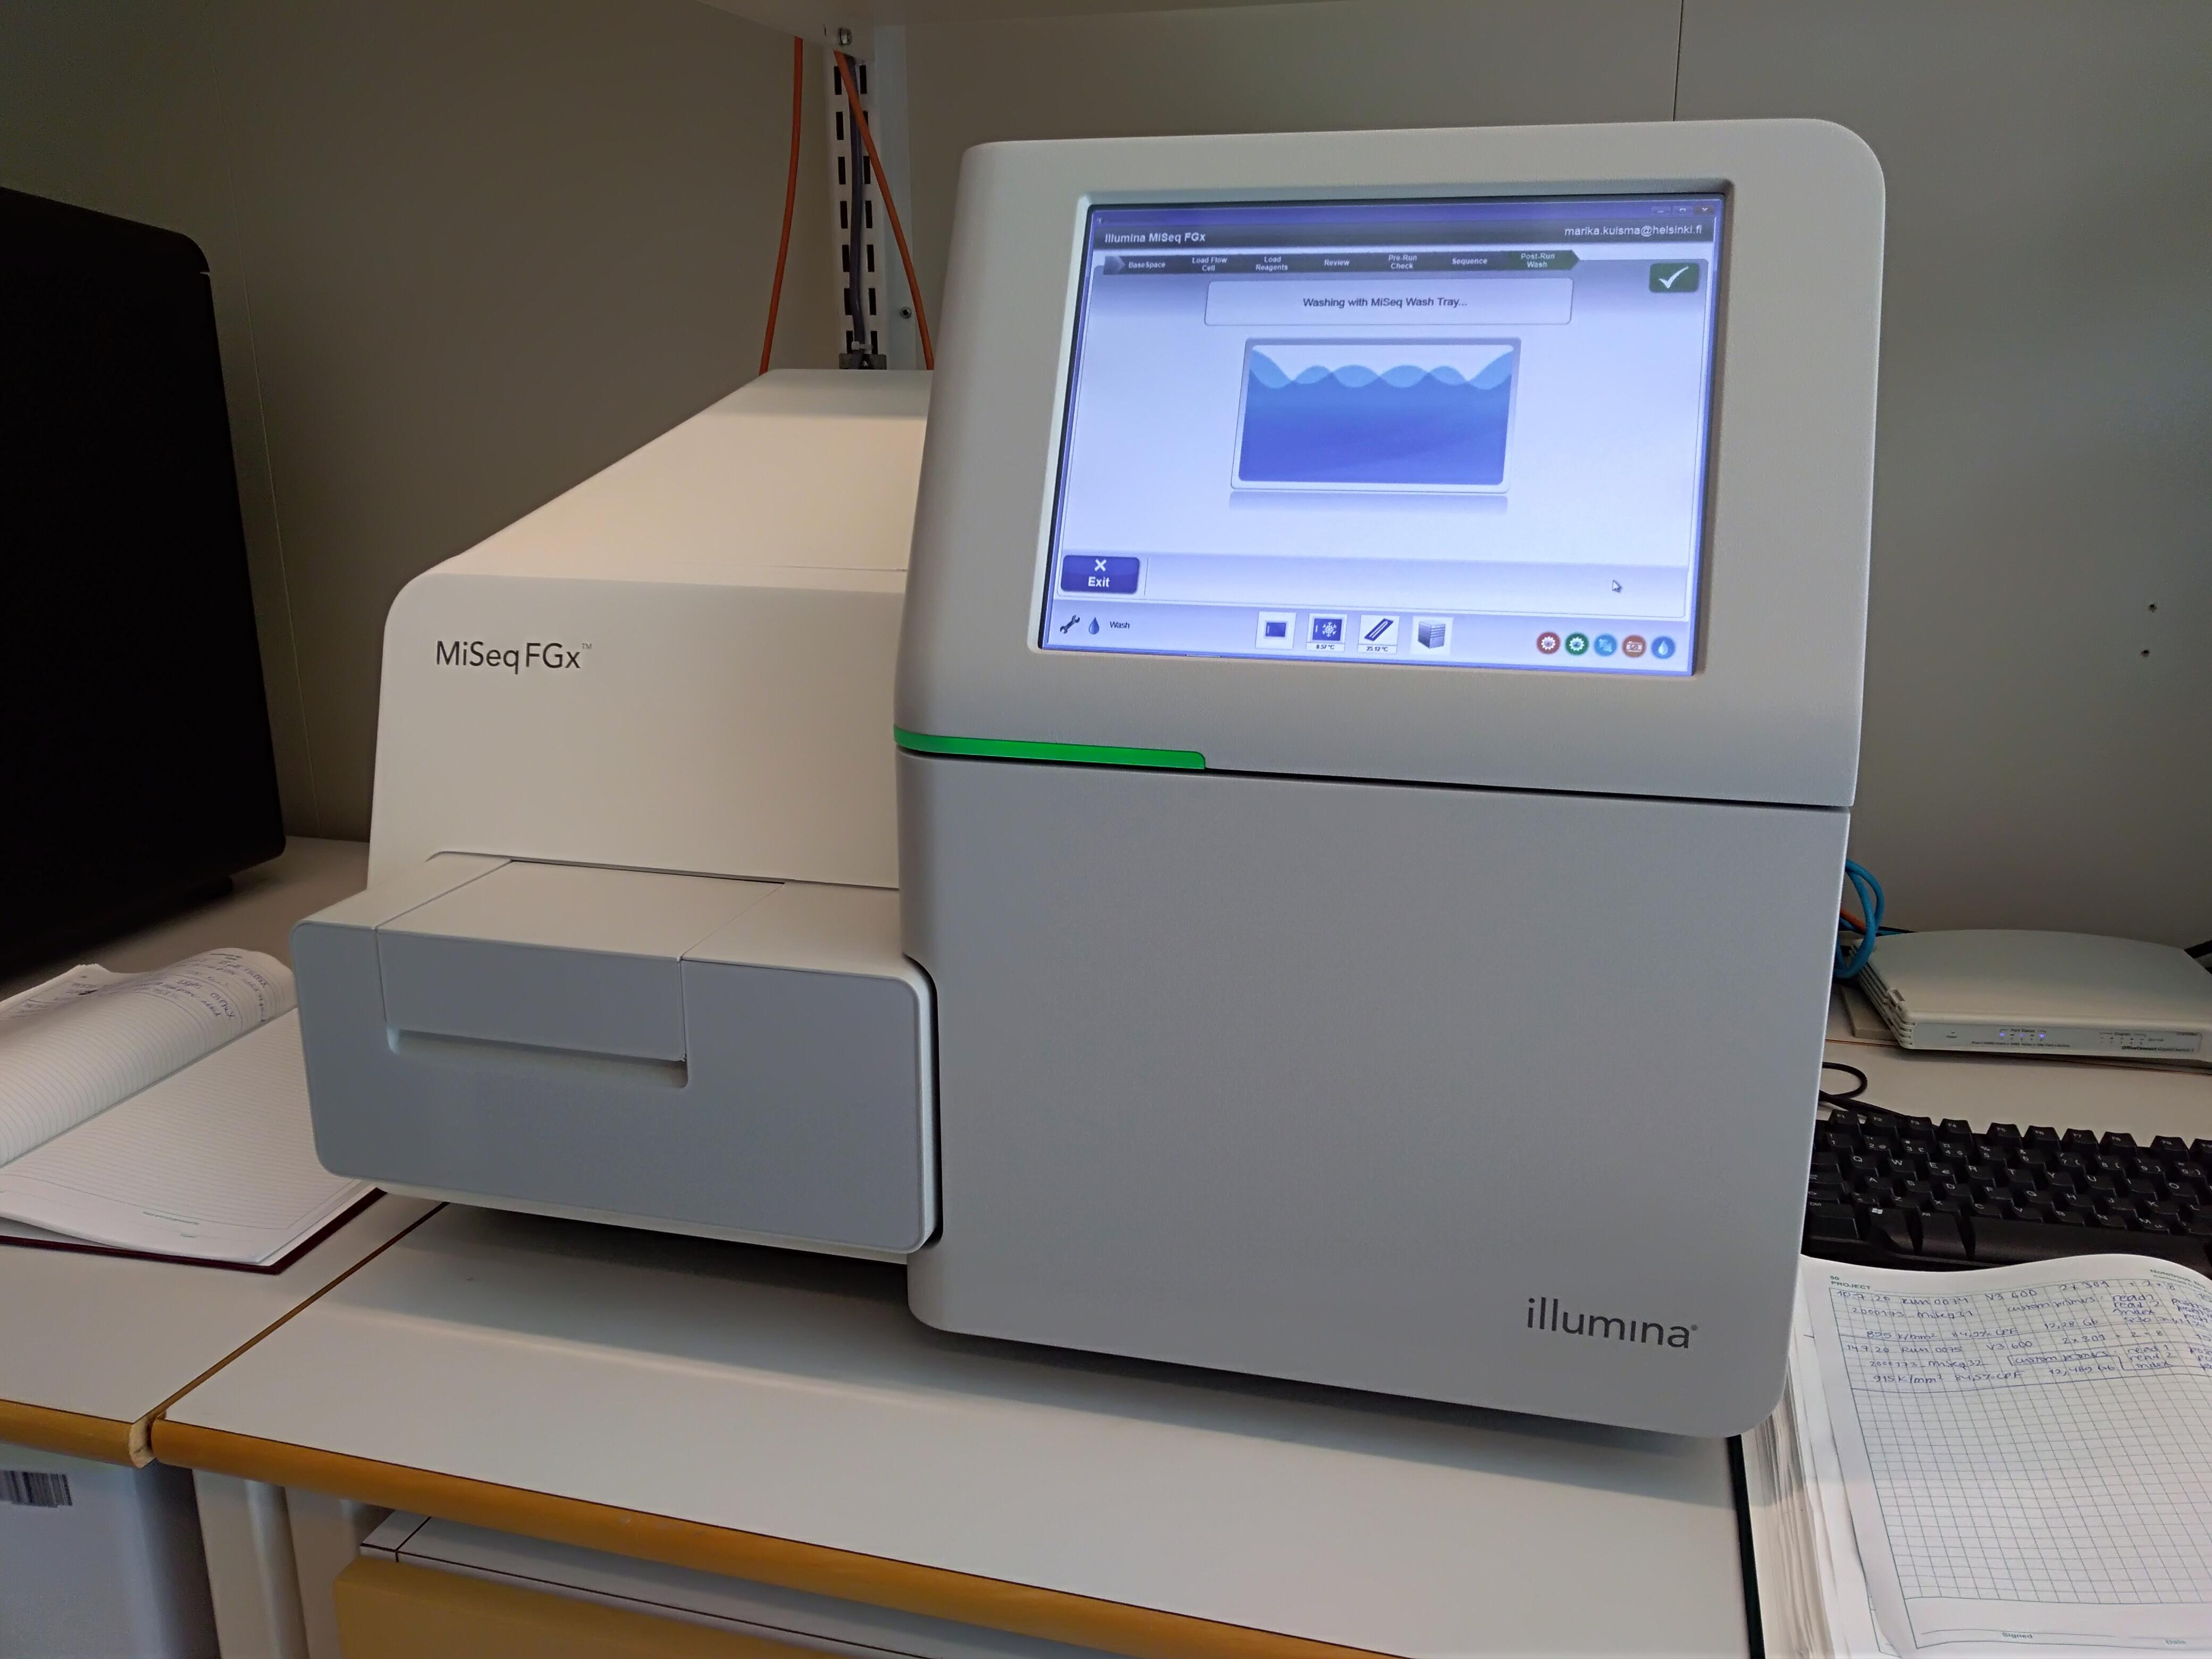 The MiSeq FGx System is optimal for targeted sequencing as well as for small genomes, and it is the first and only next-generation sequencing (NGS) instrument developed and validated for forensic genomics.